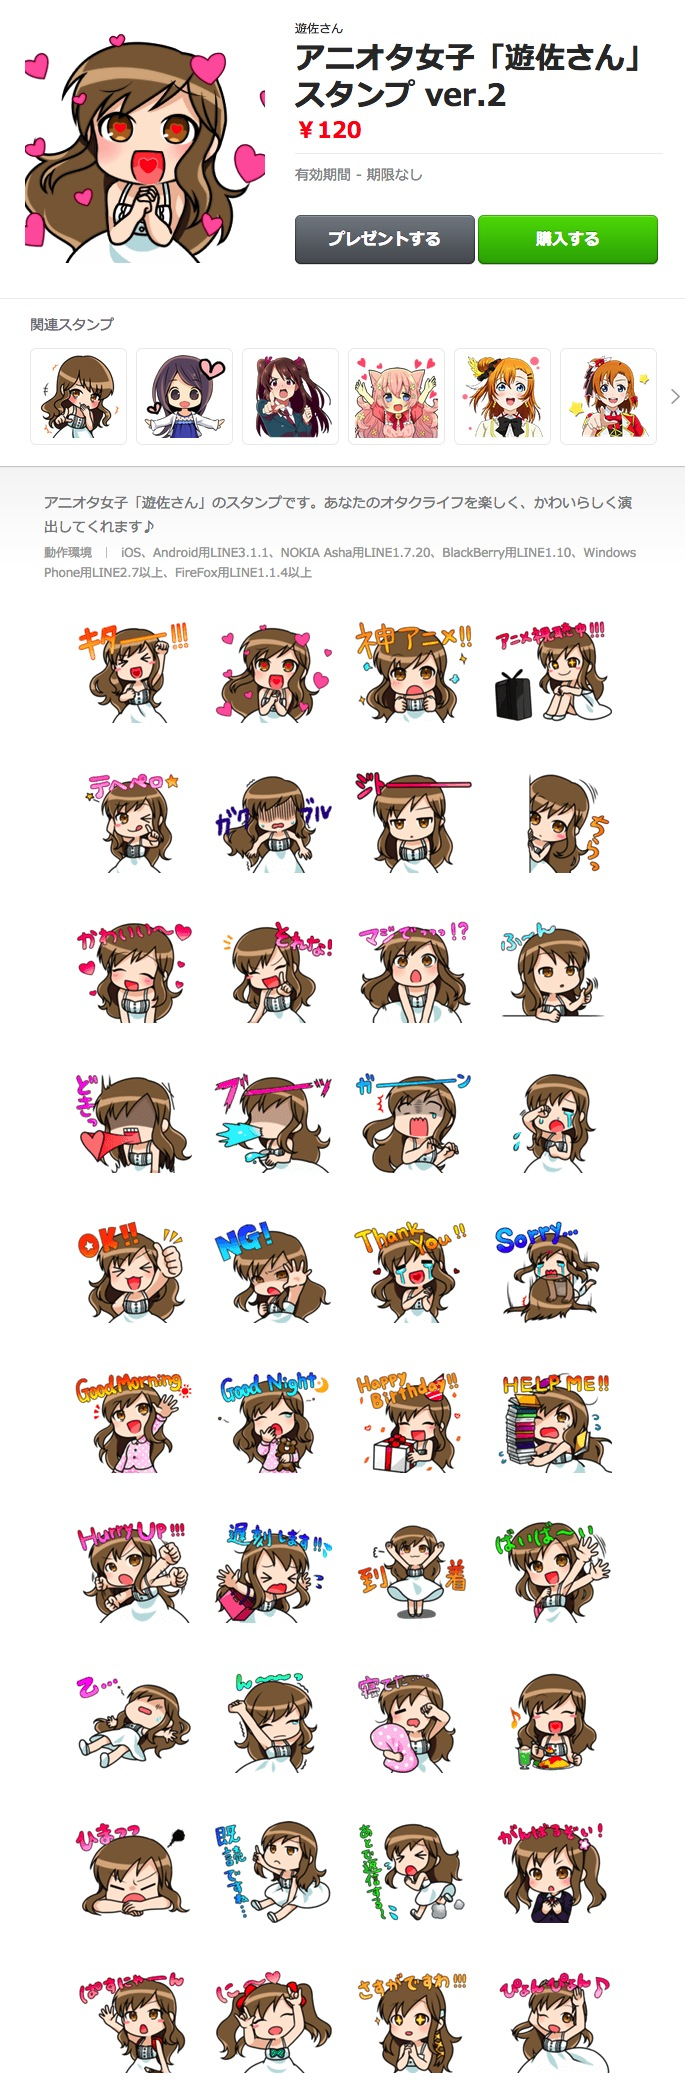 screencapture-store-line-me-stickershop-product-1078288-ja-1428641774817 のコピー-1